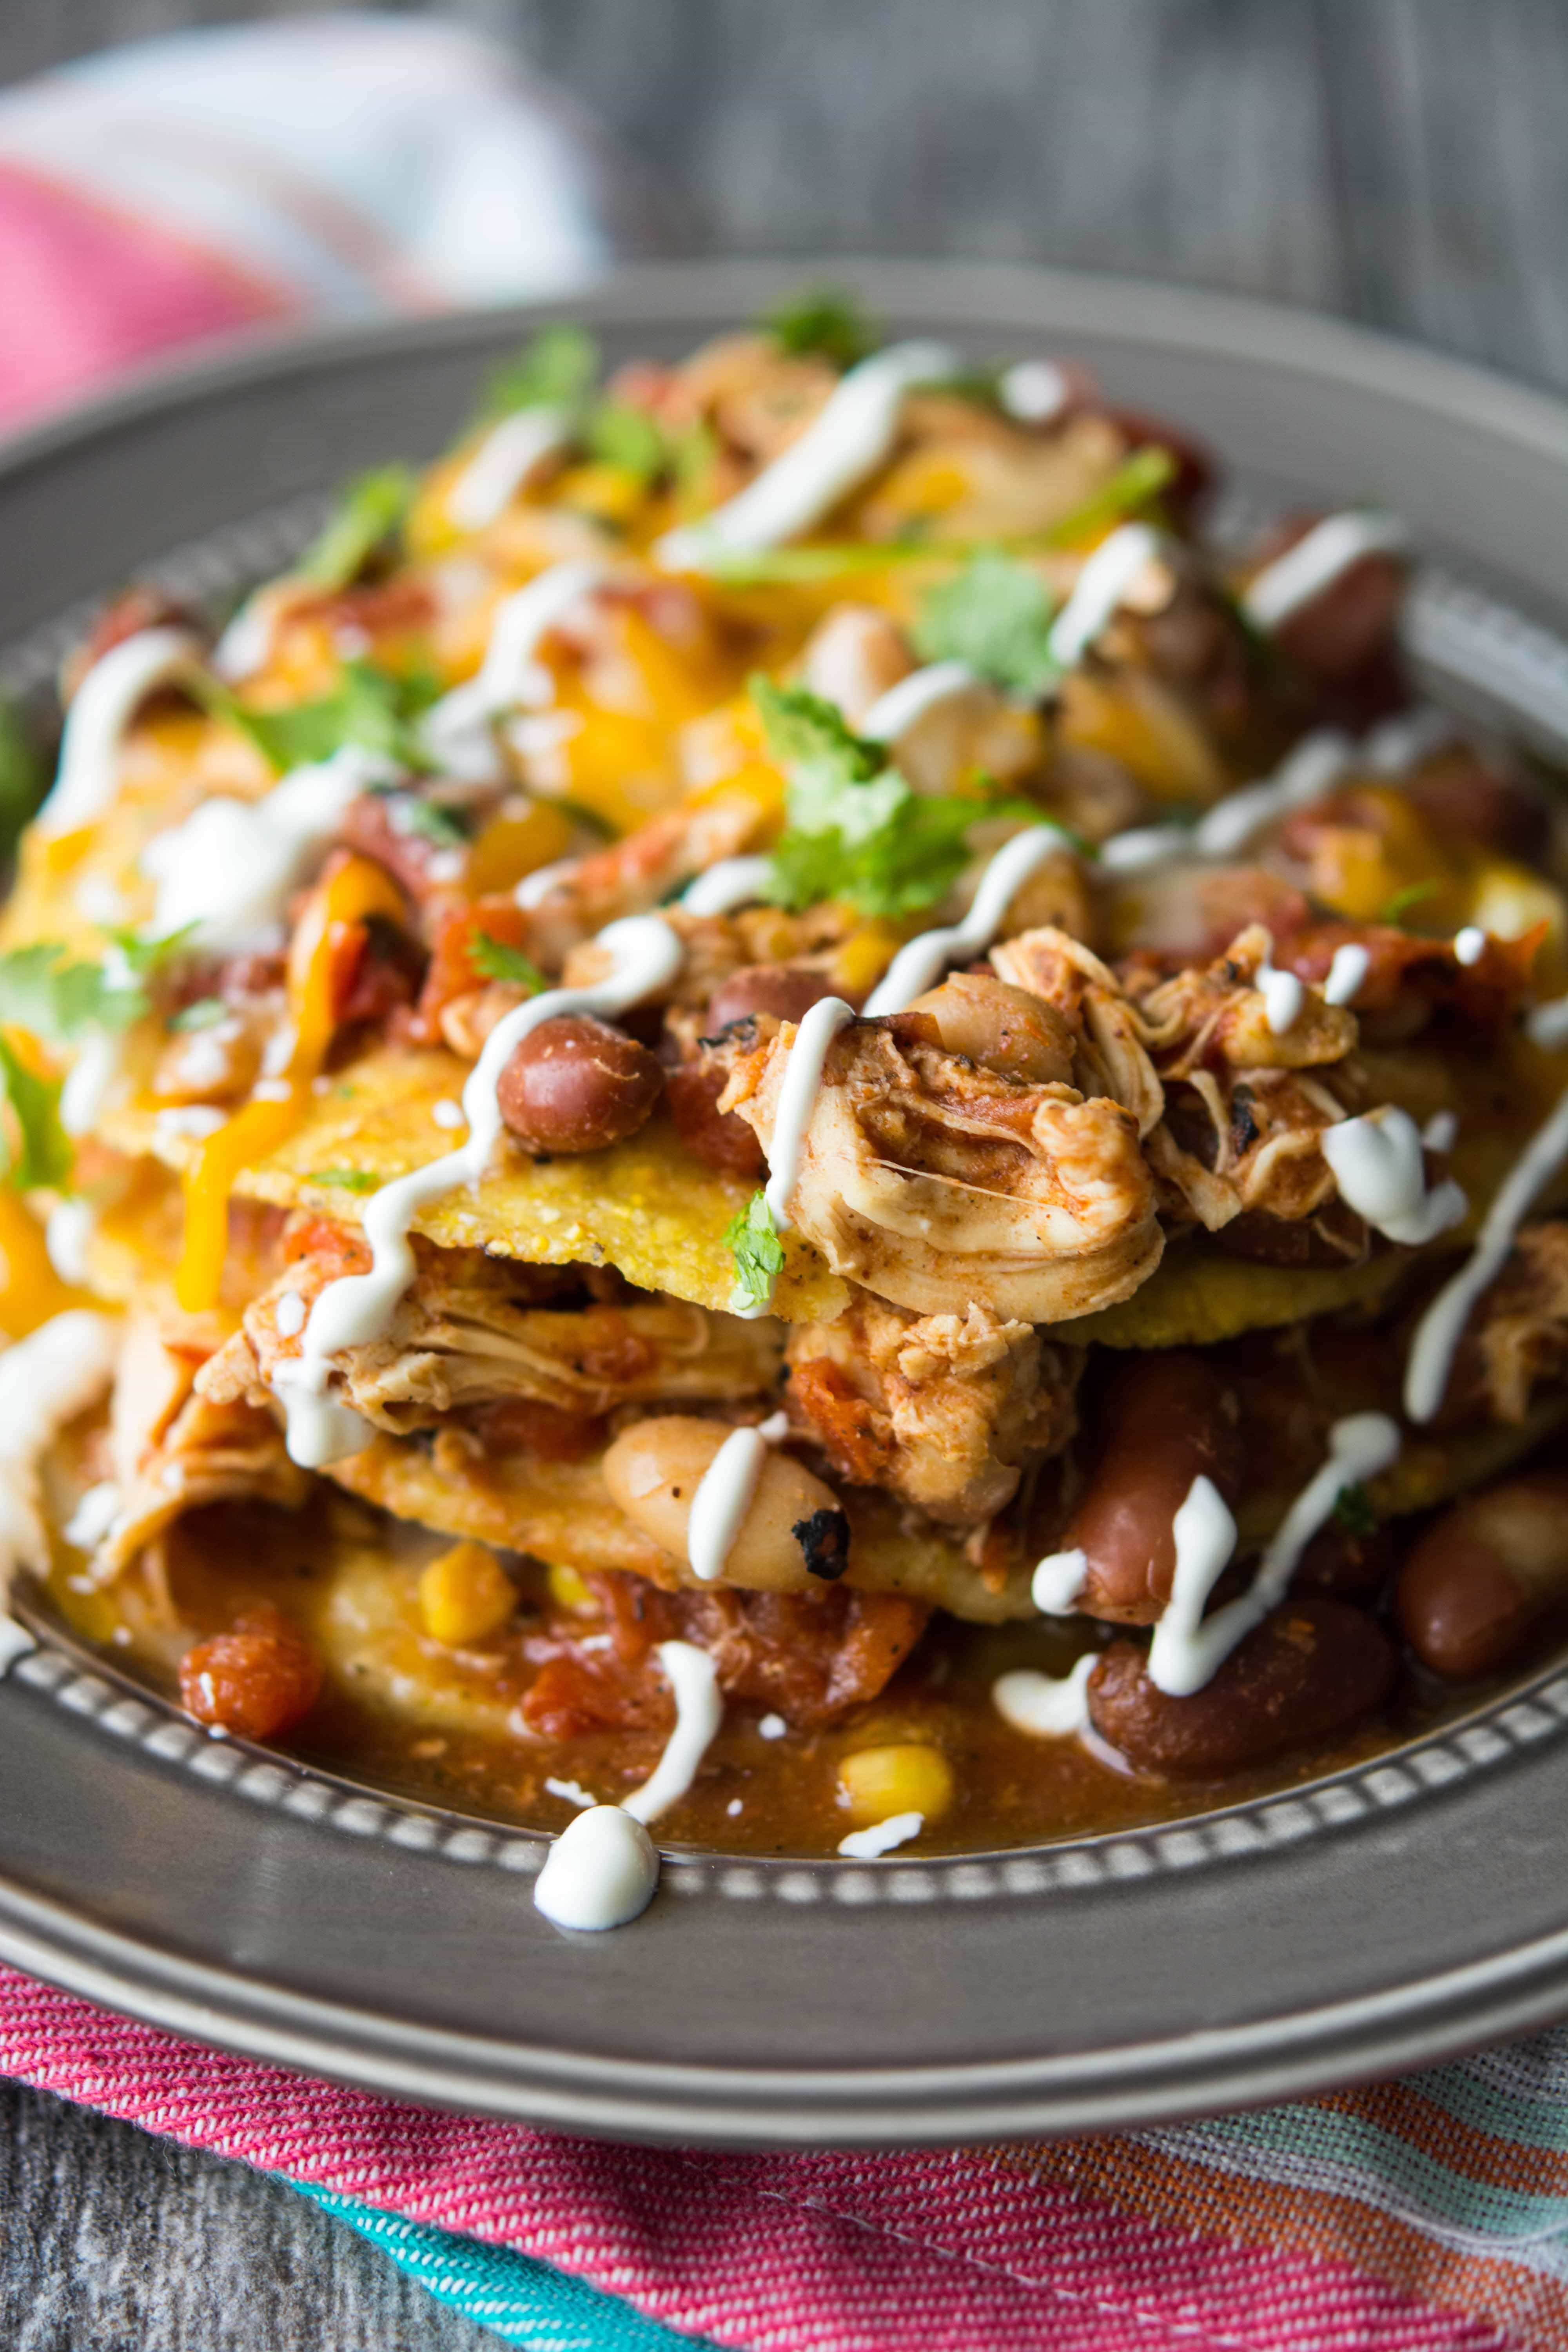 Slow Cooker Mexican Chili Tostada Stacks Slow Cooker Gourmet